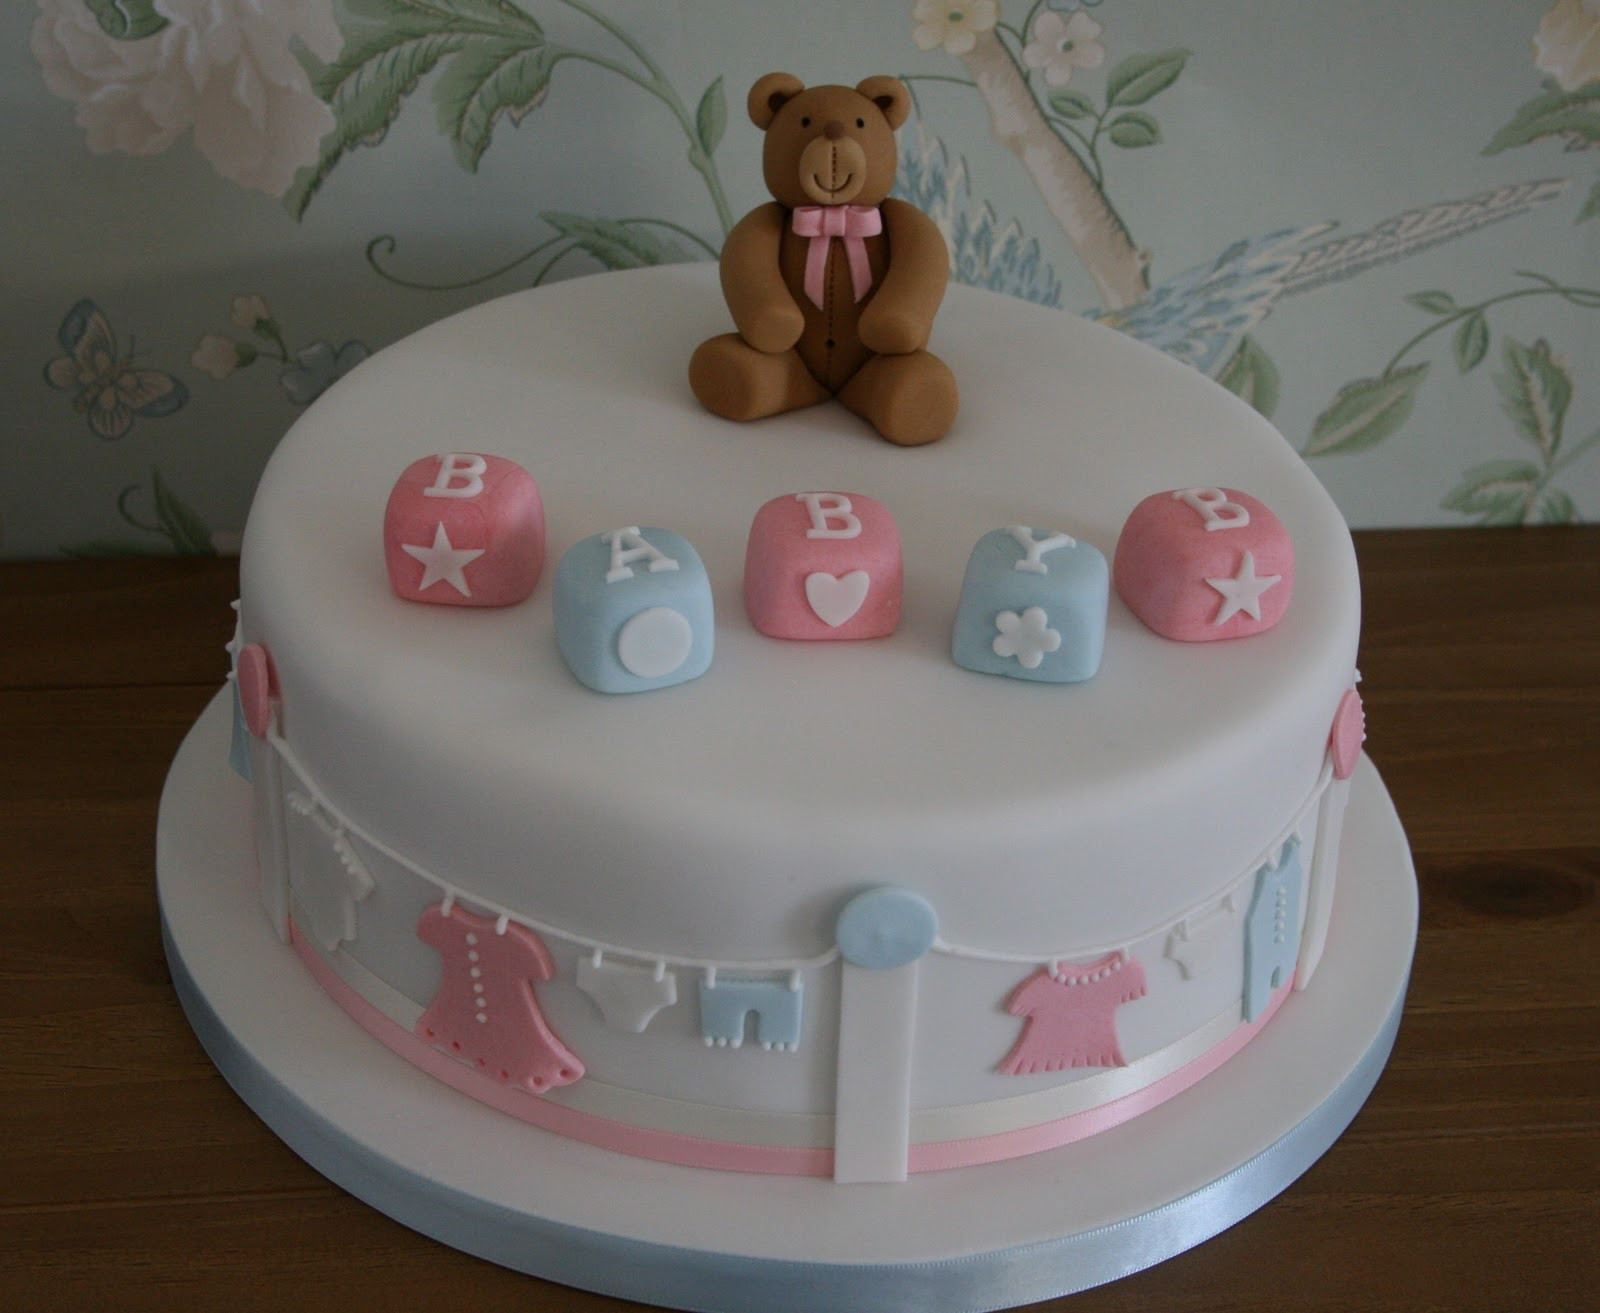 Baby Cake Decorations Ideas  70 Baby Shower Cakes and Cupcakes Ideas